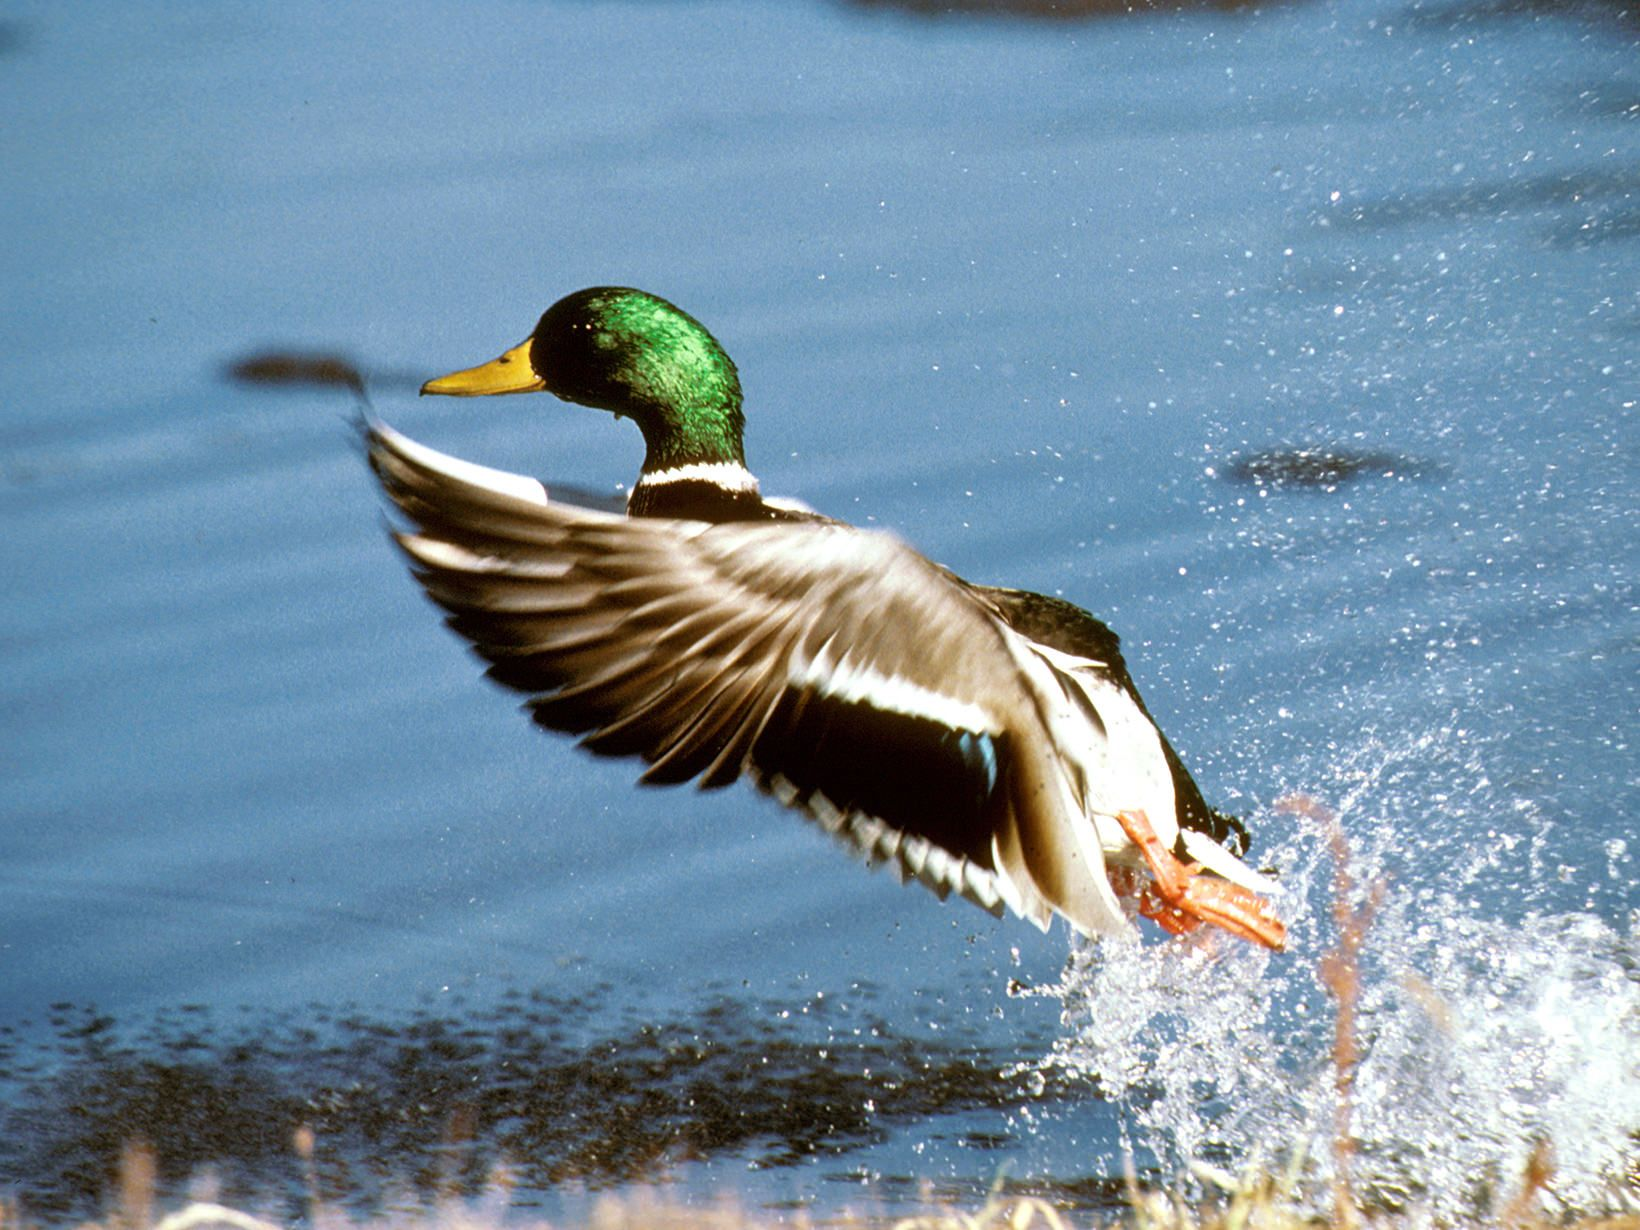 Mallard Drake duck flying out of water